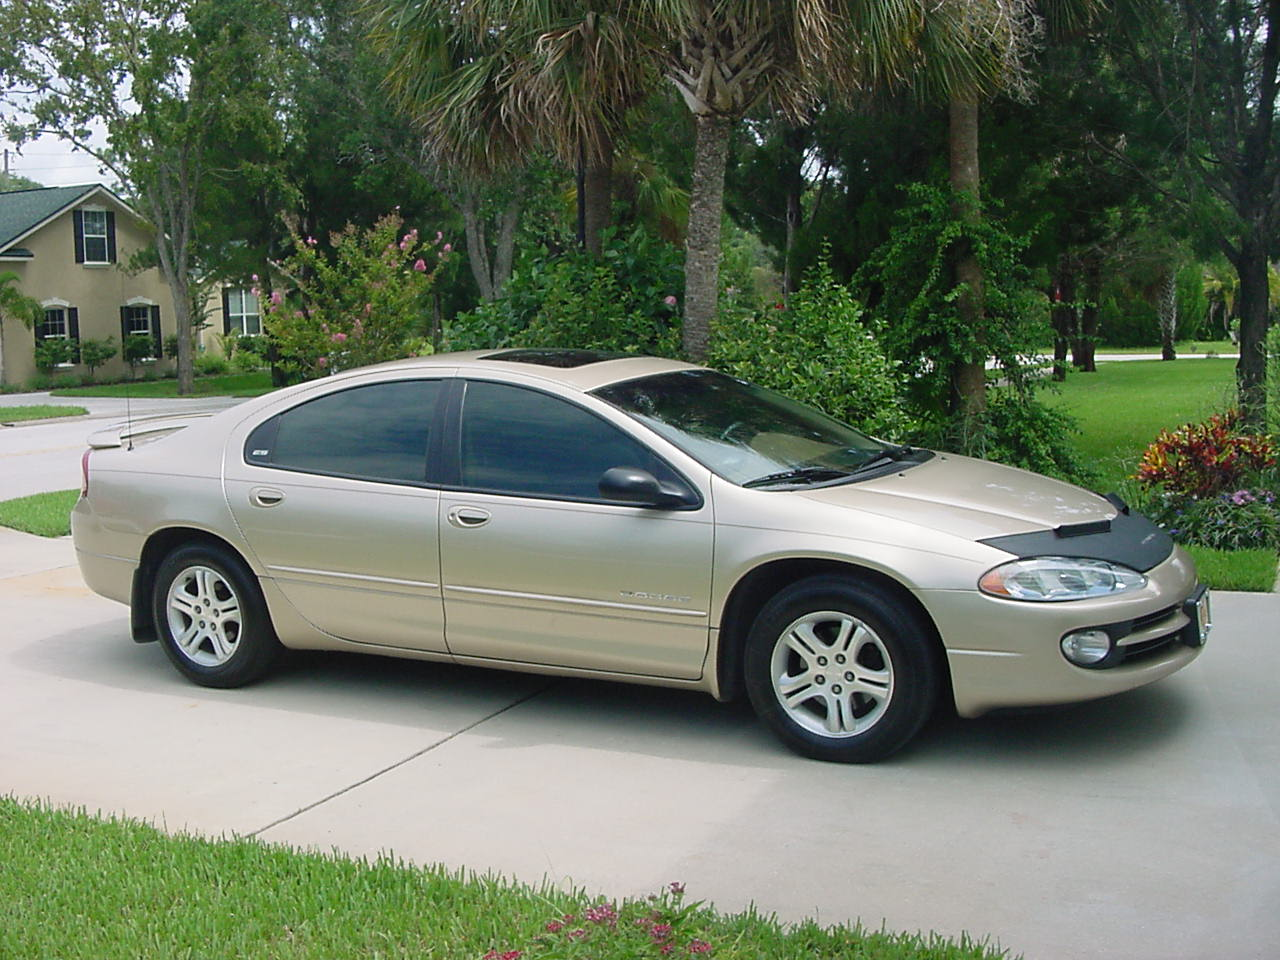 2000 Dodge Intrepid ES picture